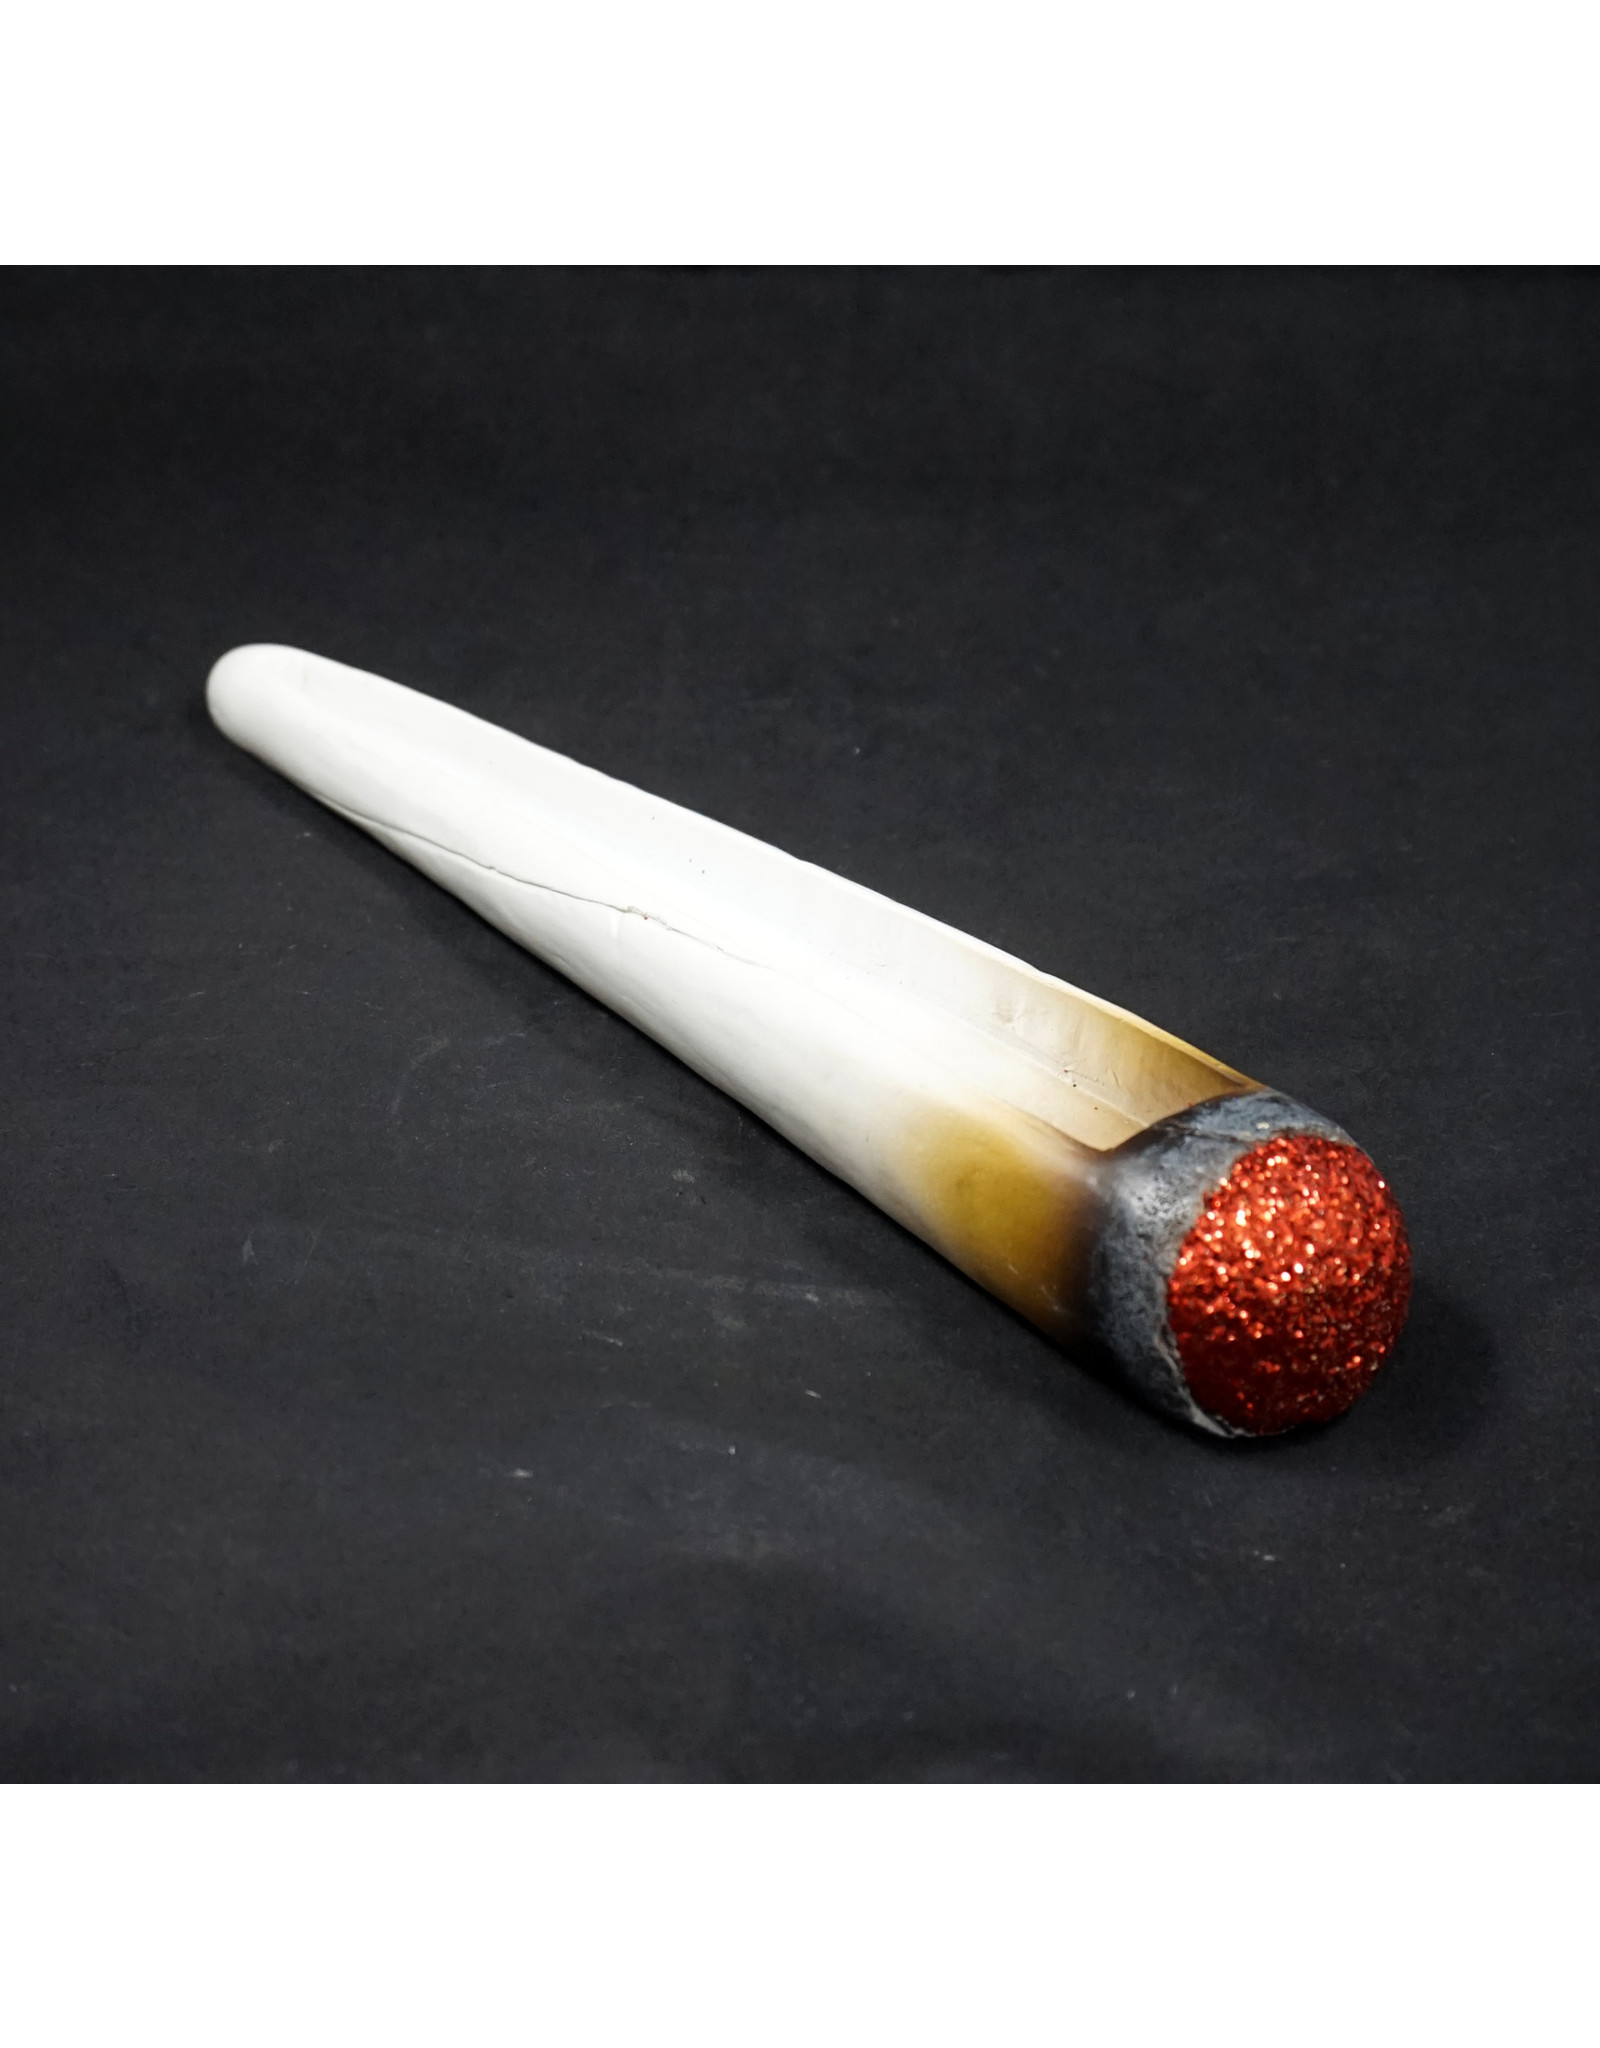 Burning Cigarette Incense Burner